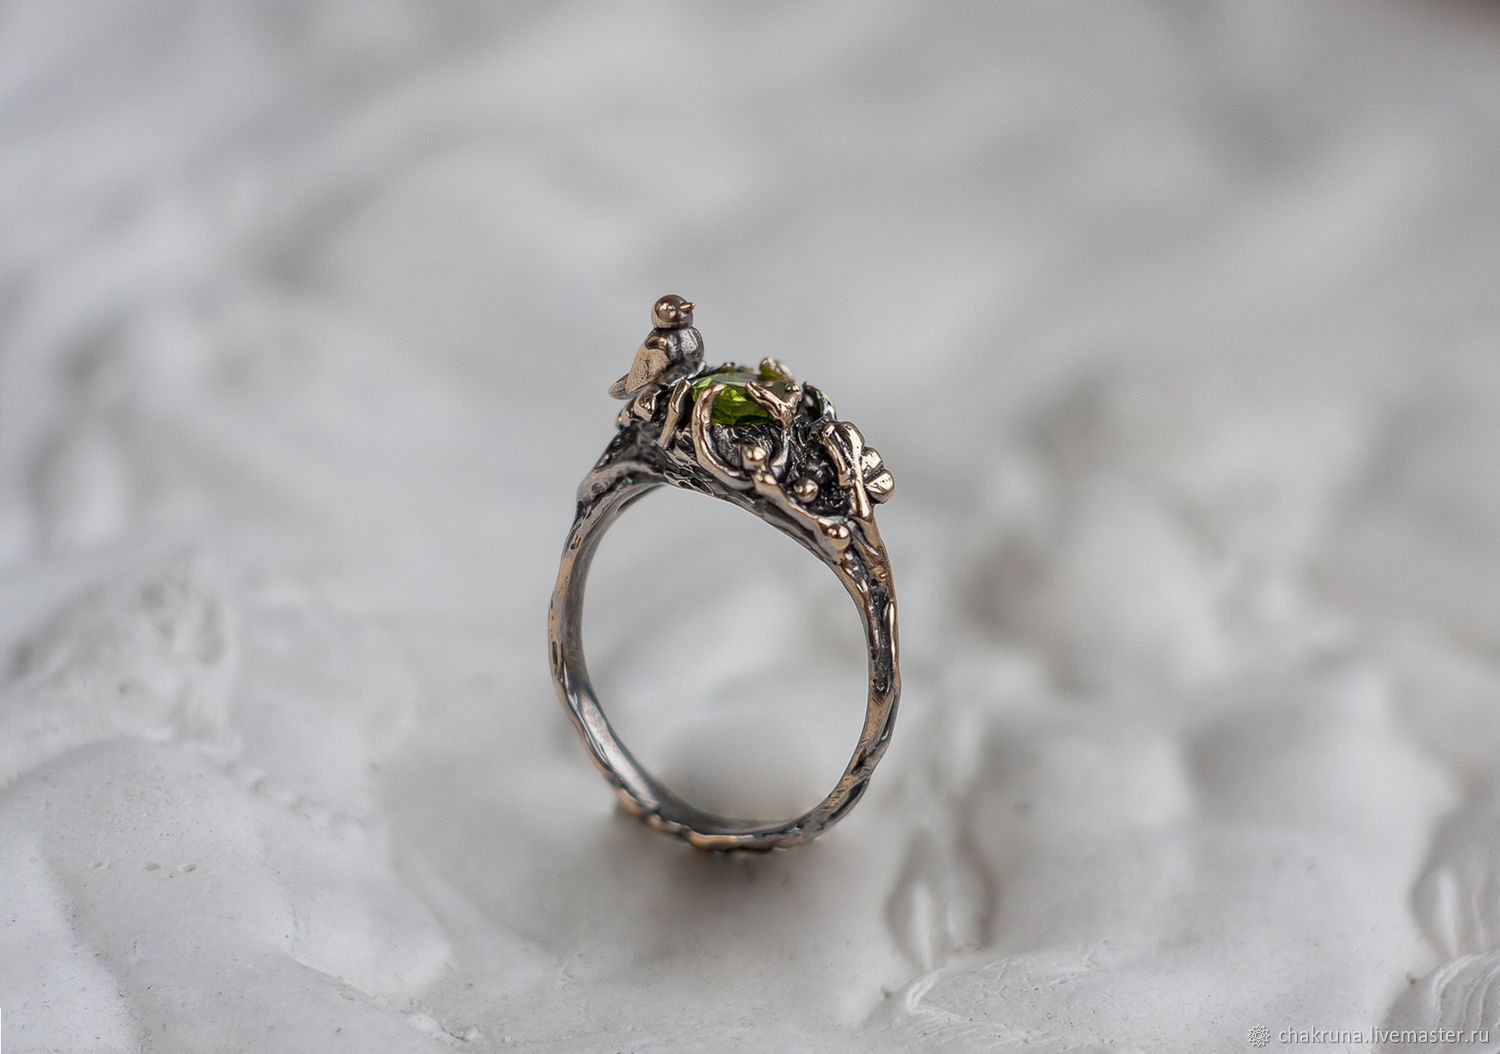 Bronze silver ring 'TAURIEL' with chrysolite, Rings, Moscow,  Фото №1